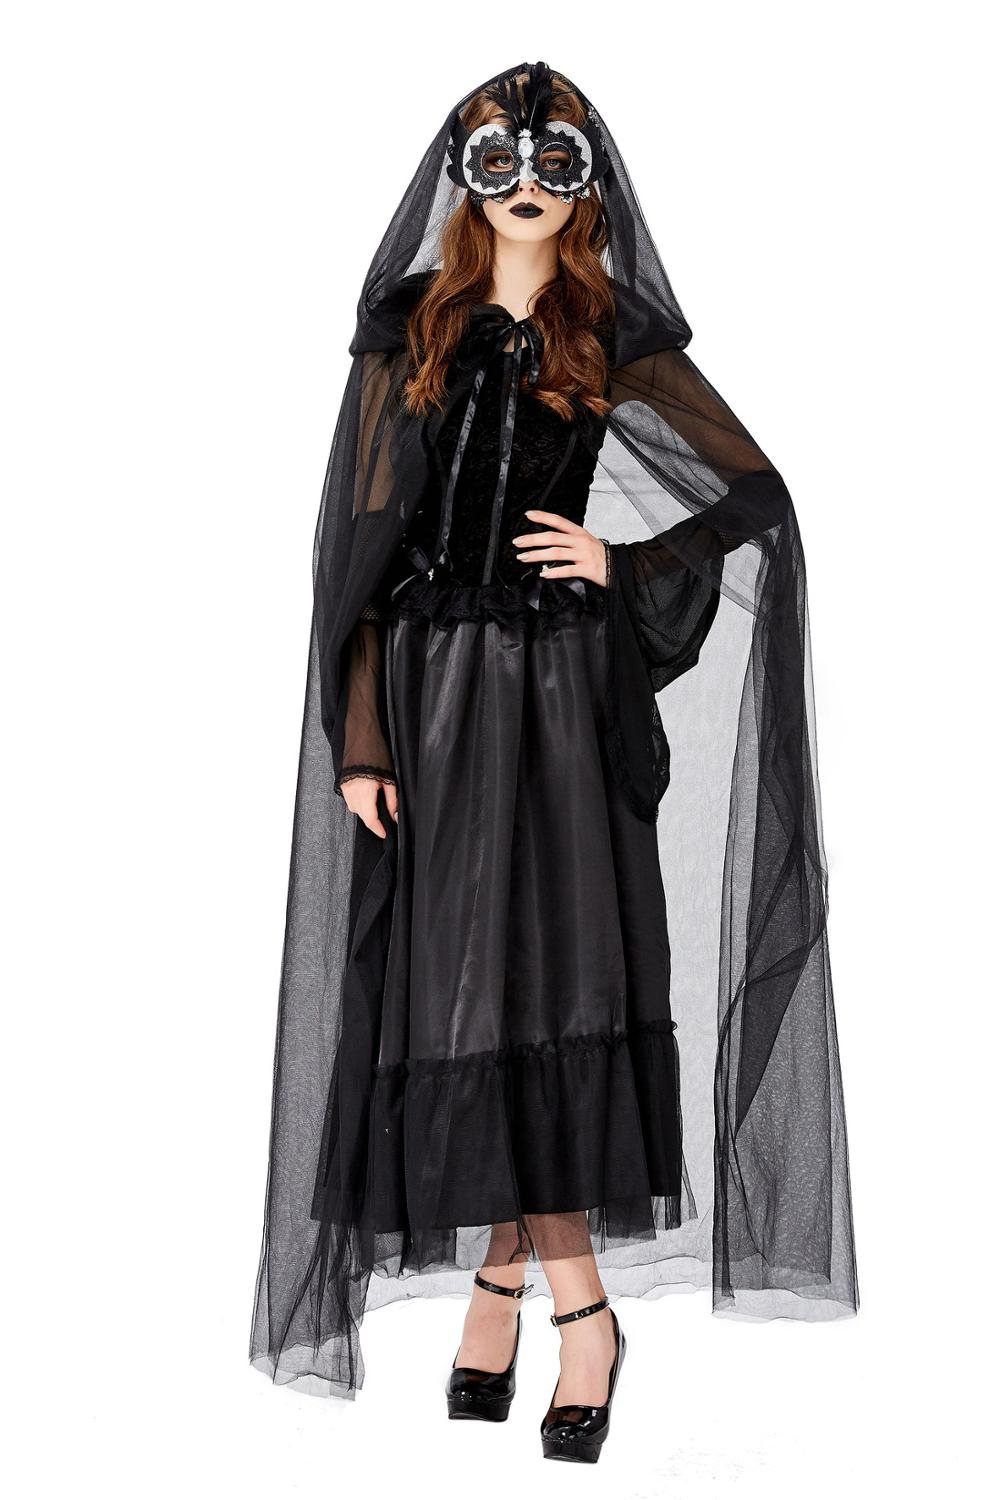 Halloween devil Cosplay Costume Women Ghost bride Vampire Fantasy Dress Terror Sister Party Disguise Female Fancy For Adults